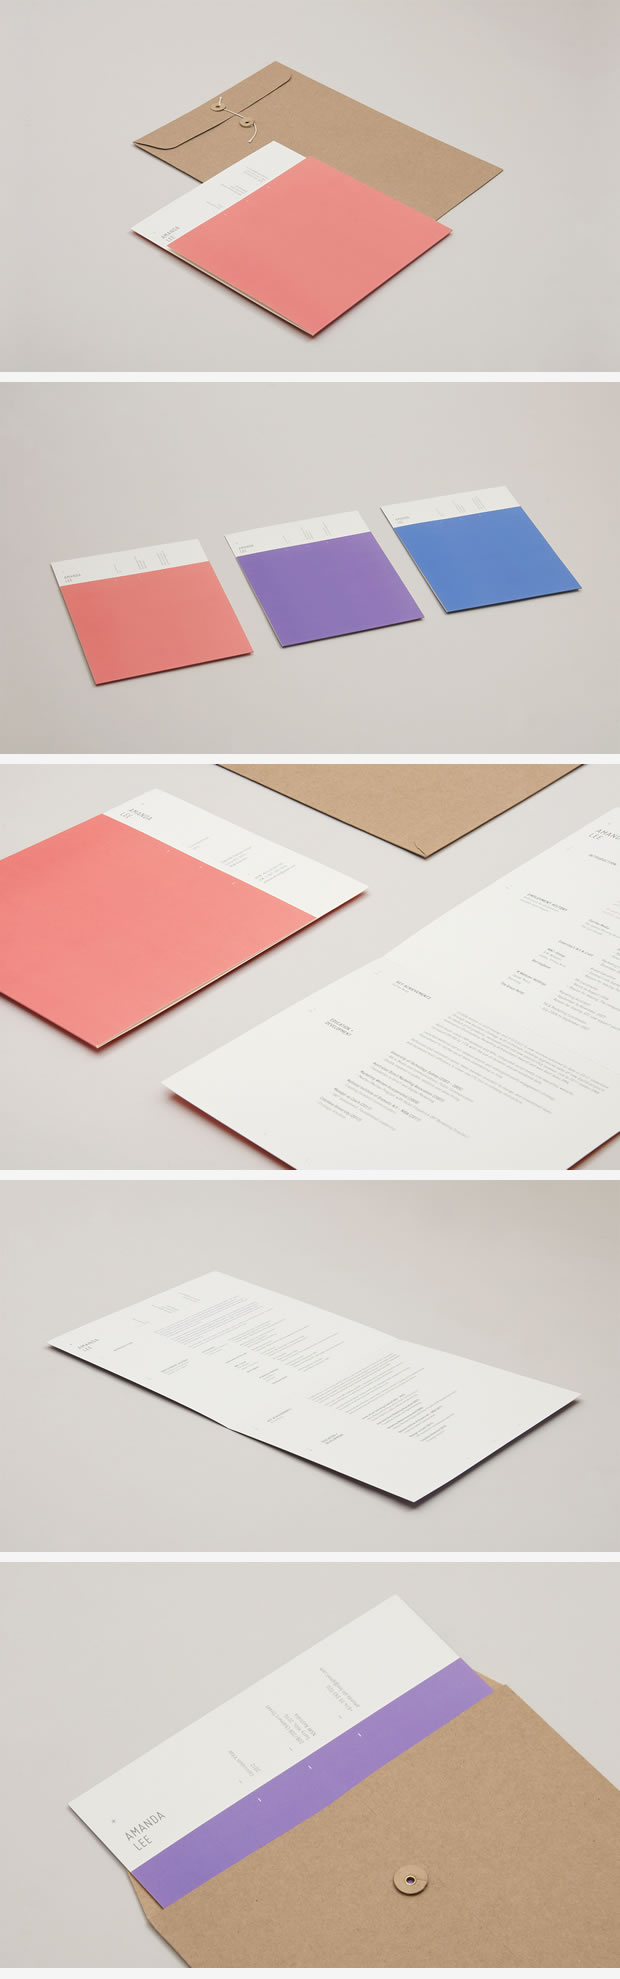 Sleek CV Design Folder